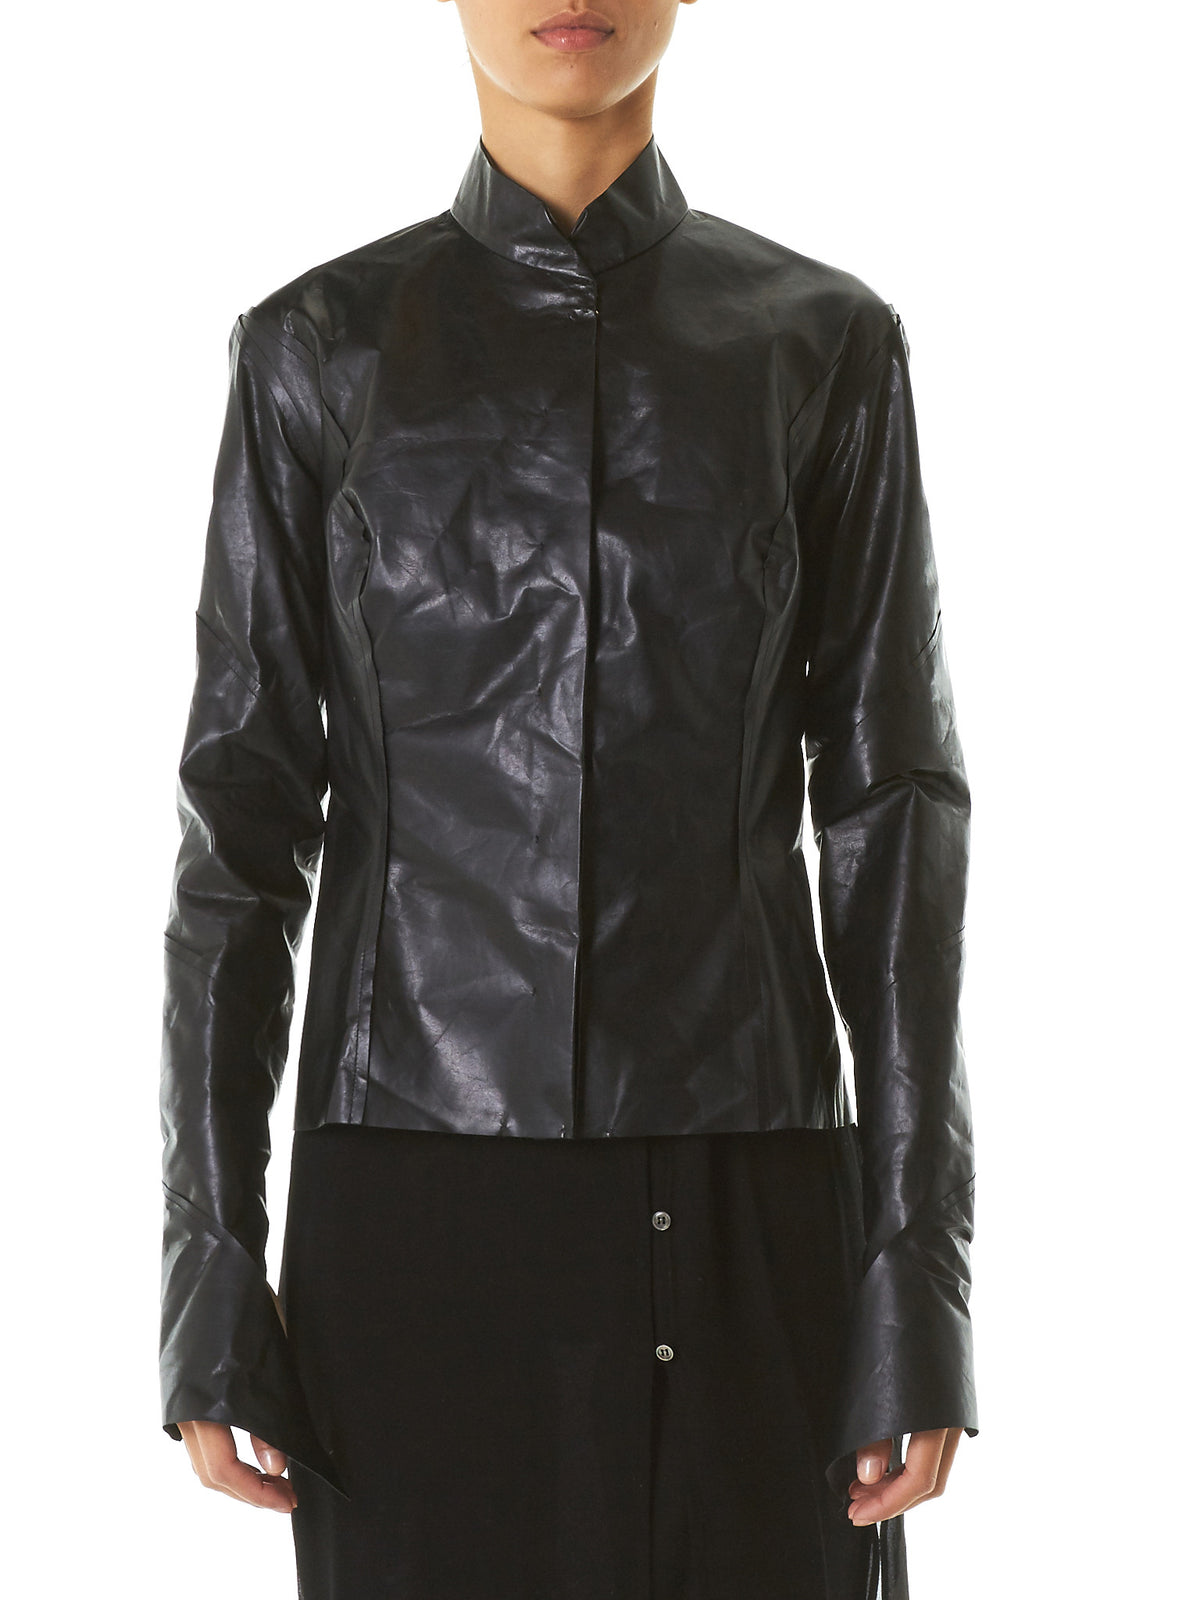 Polished Leather Jacket (JW170-NL-0-4-BLACK) - H. Lorenzo